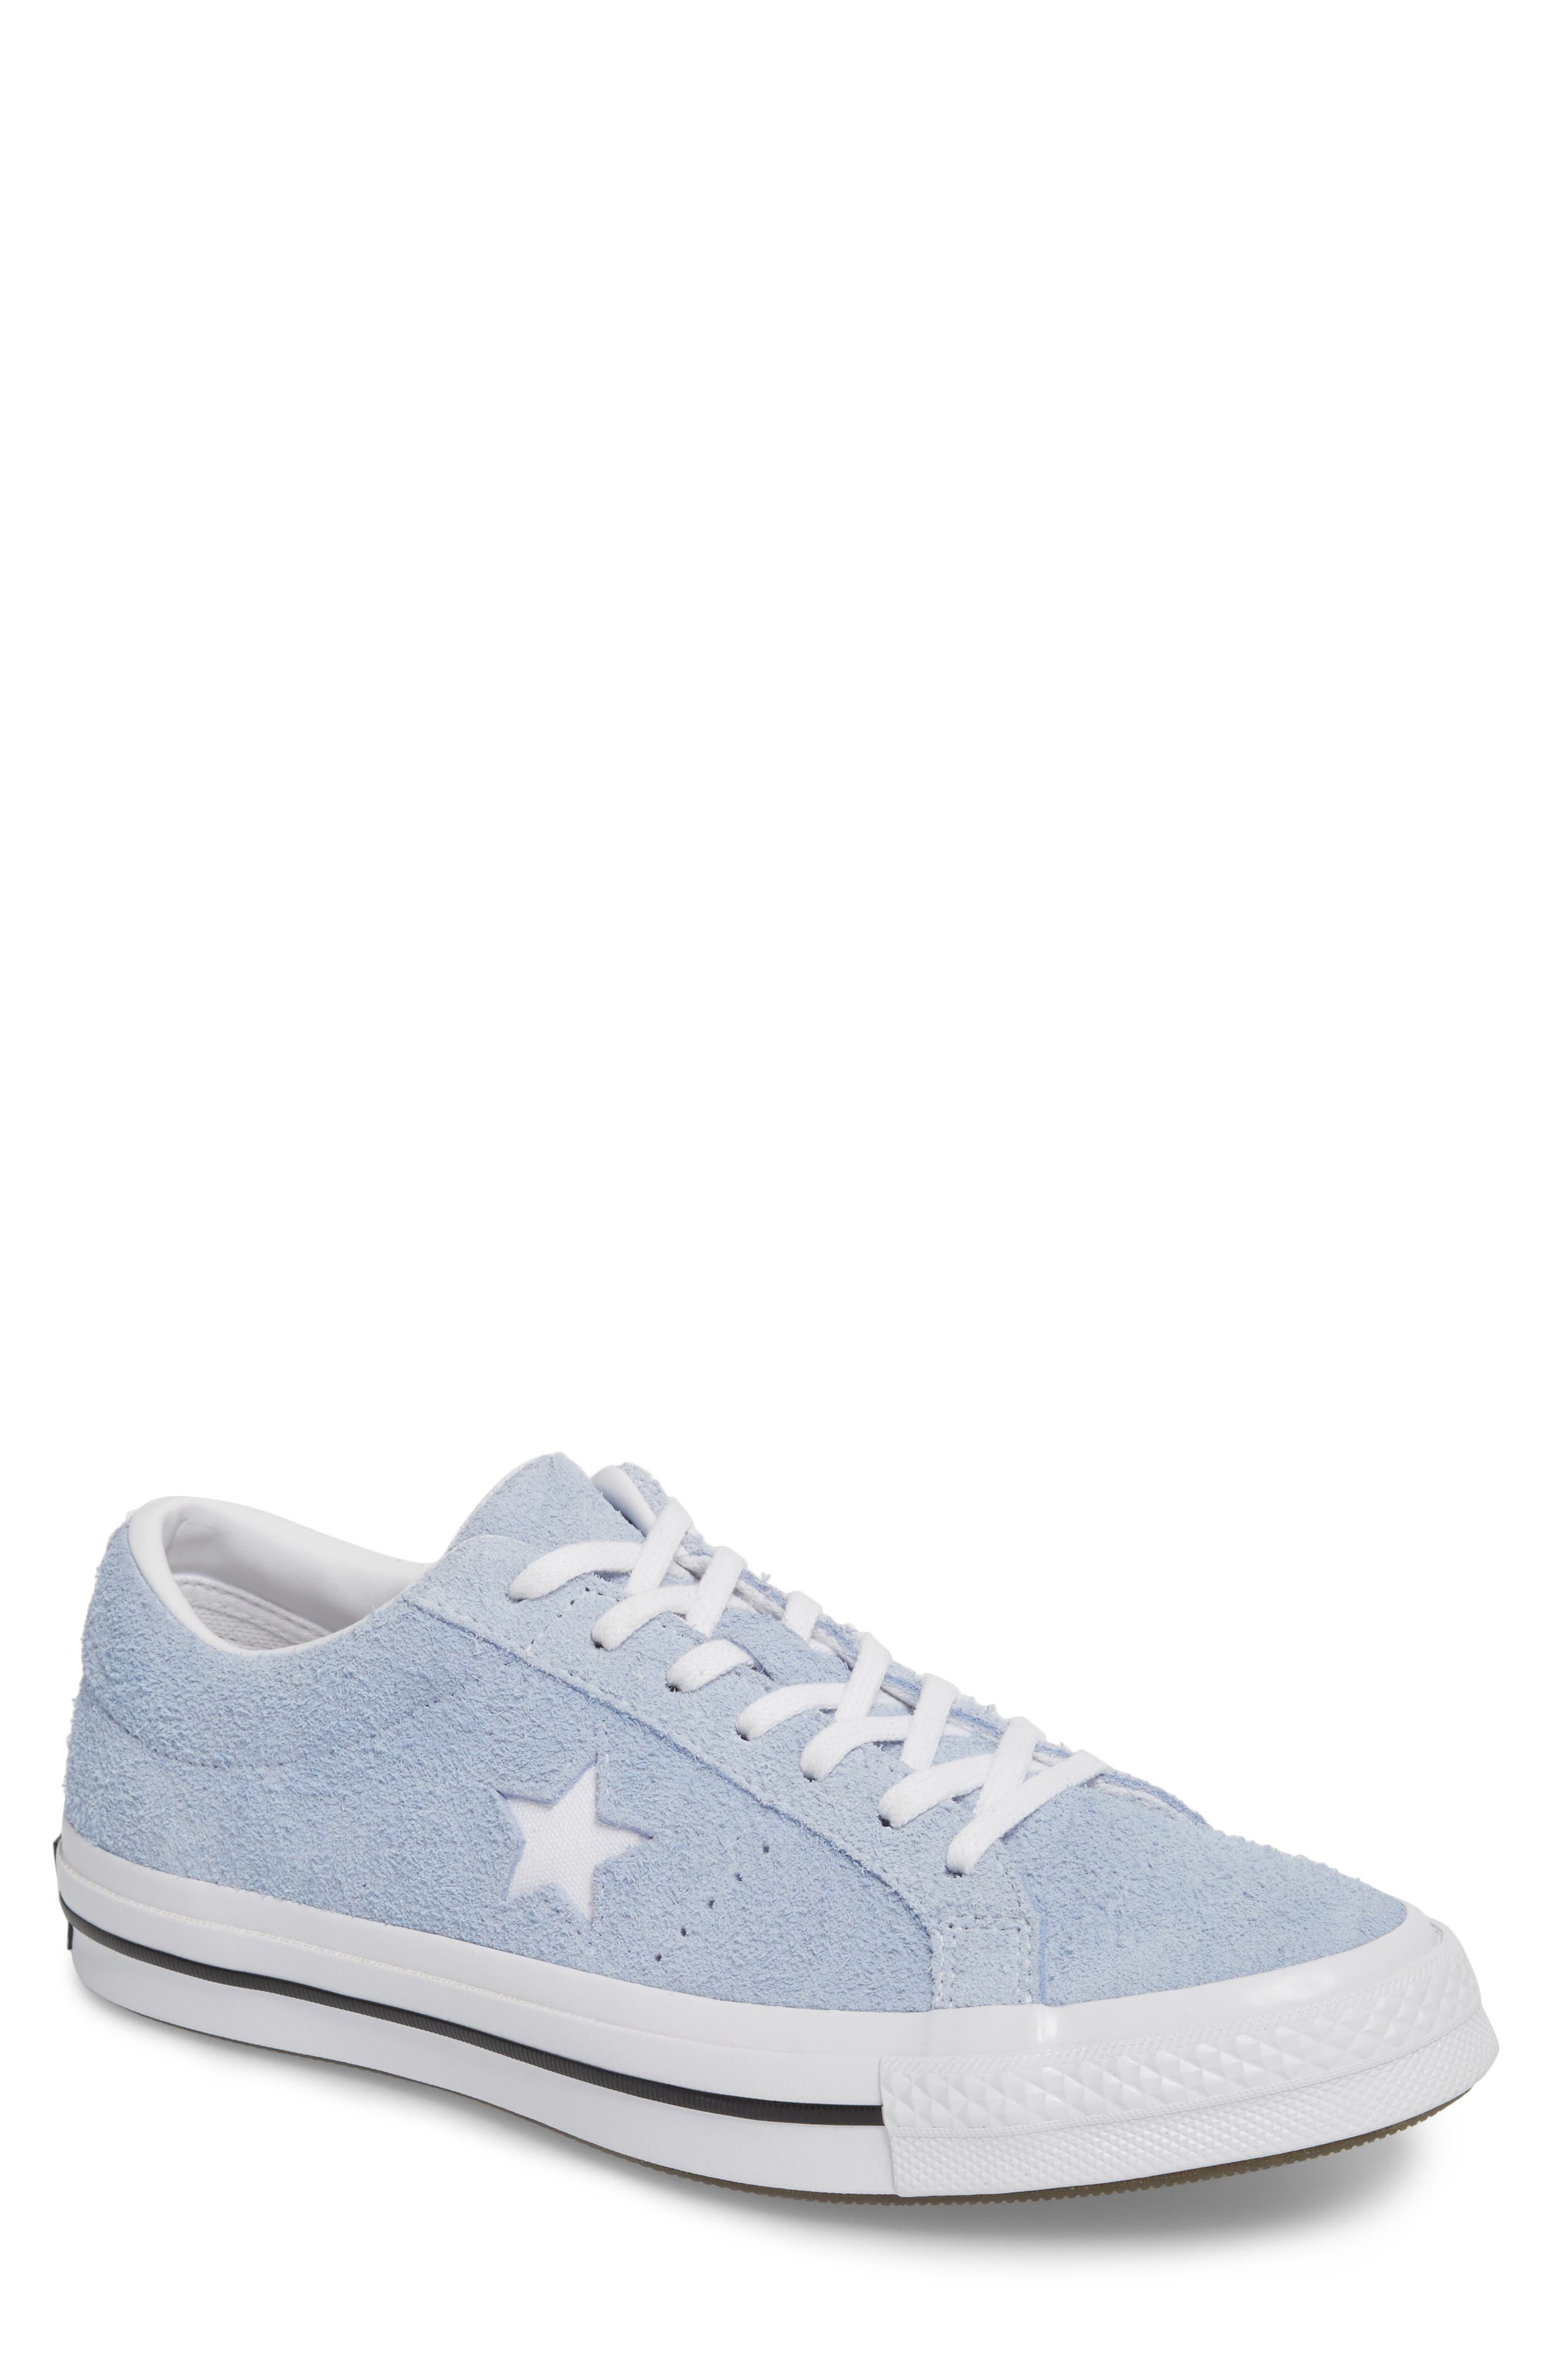 One Star Sneaker,                             Main thumbnail 1, color,                             Blue Chill Suede